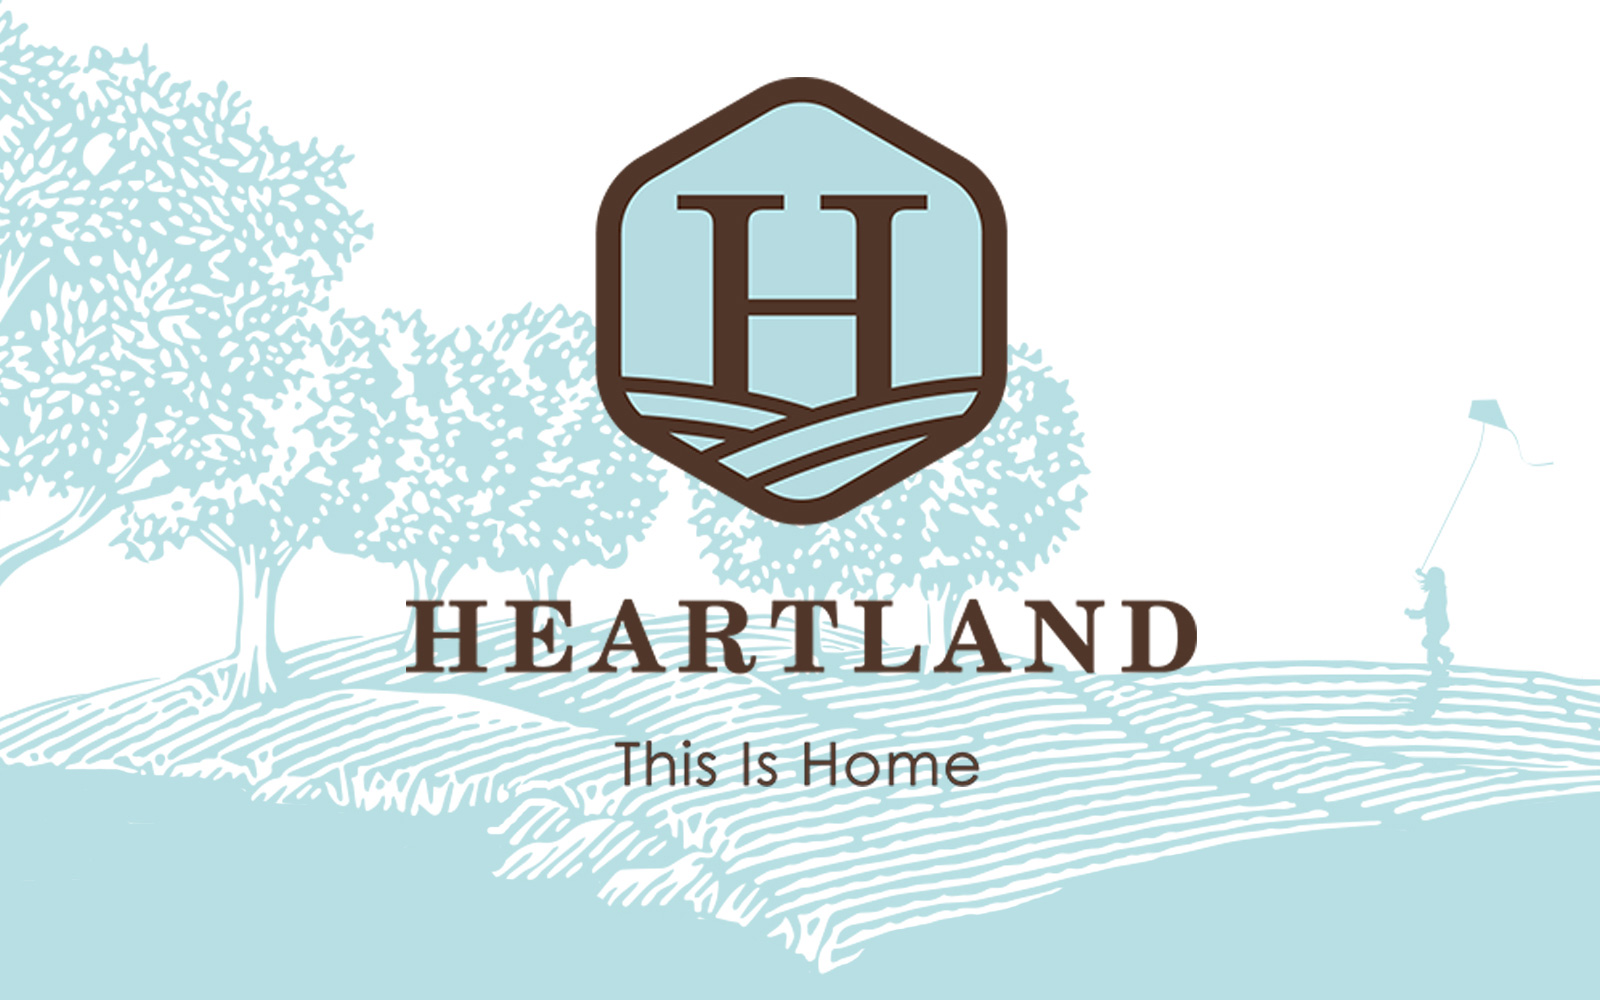 Heartland logo with illustration